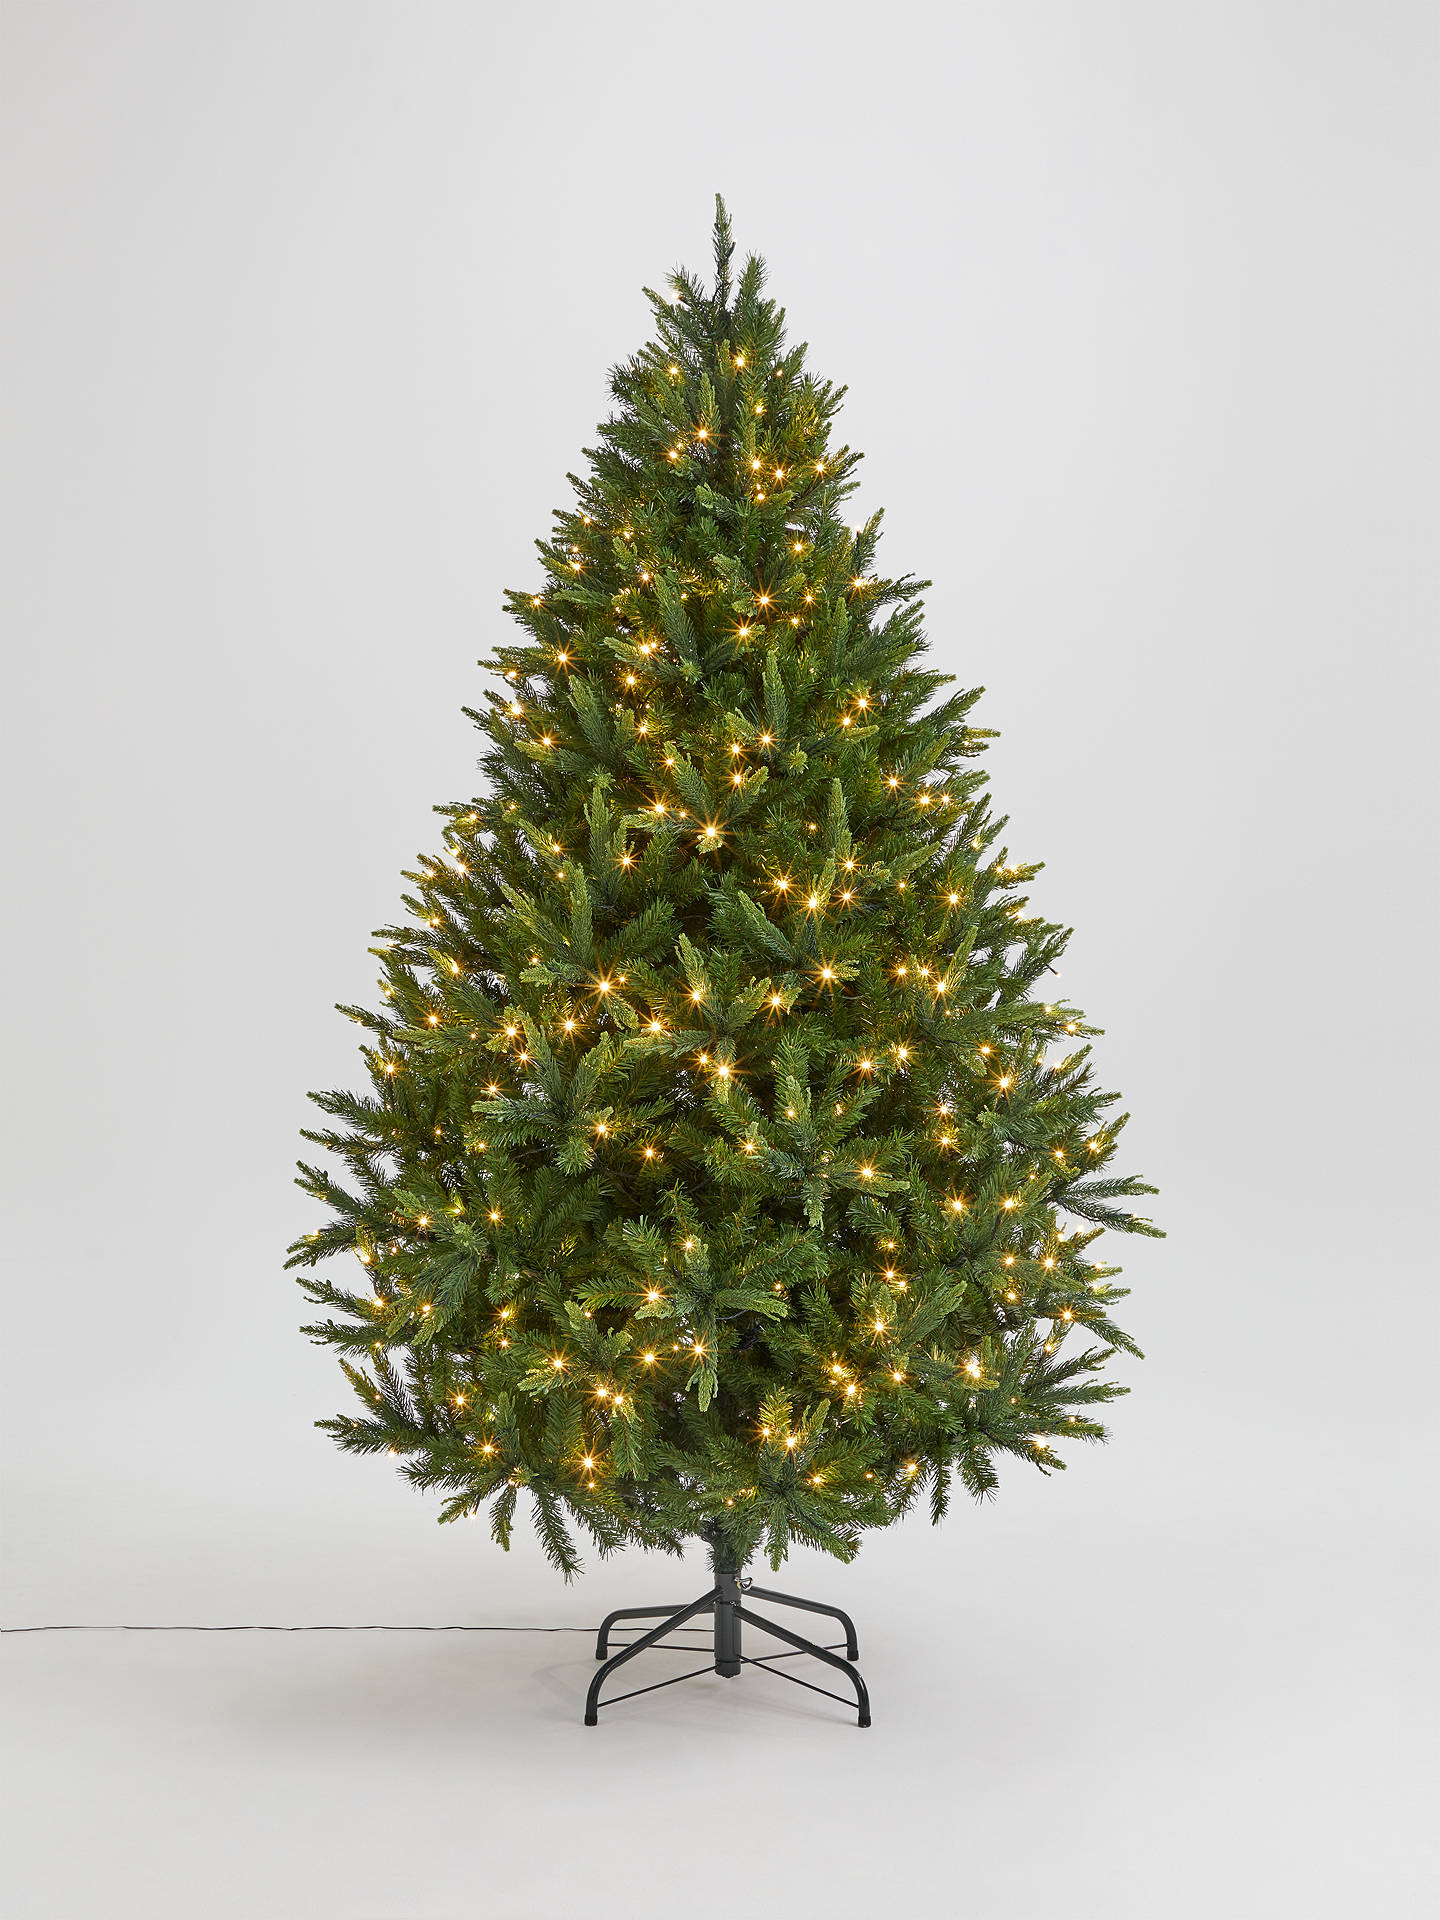 John Lewis Christmas Tree.John Lewis Partners Peardrop Pre Lit Christmas Tree 7ft